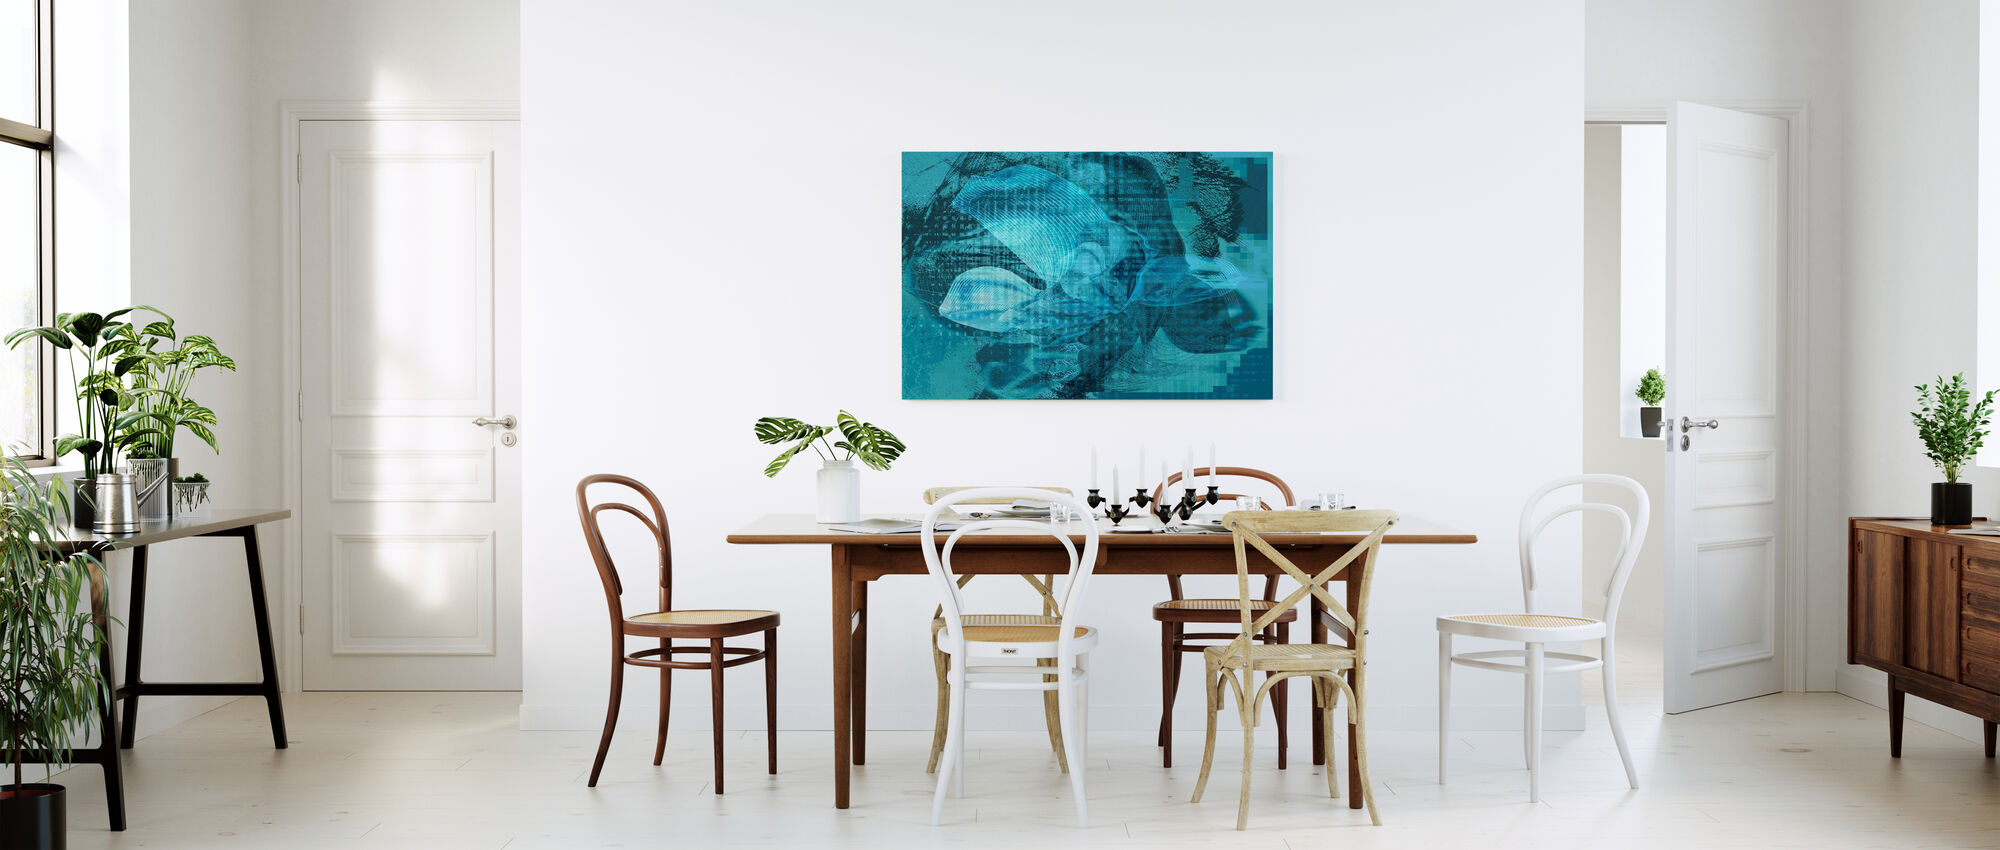 Orchid Chaos - Blue Green - Canvas print - Kitchen